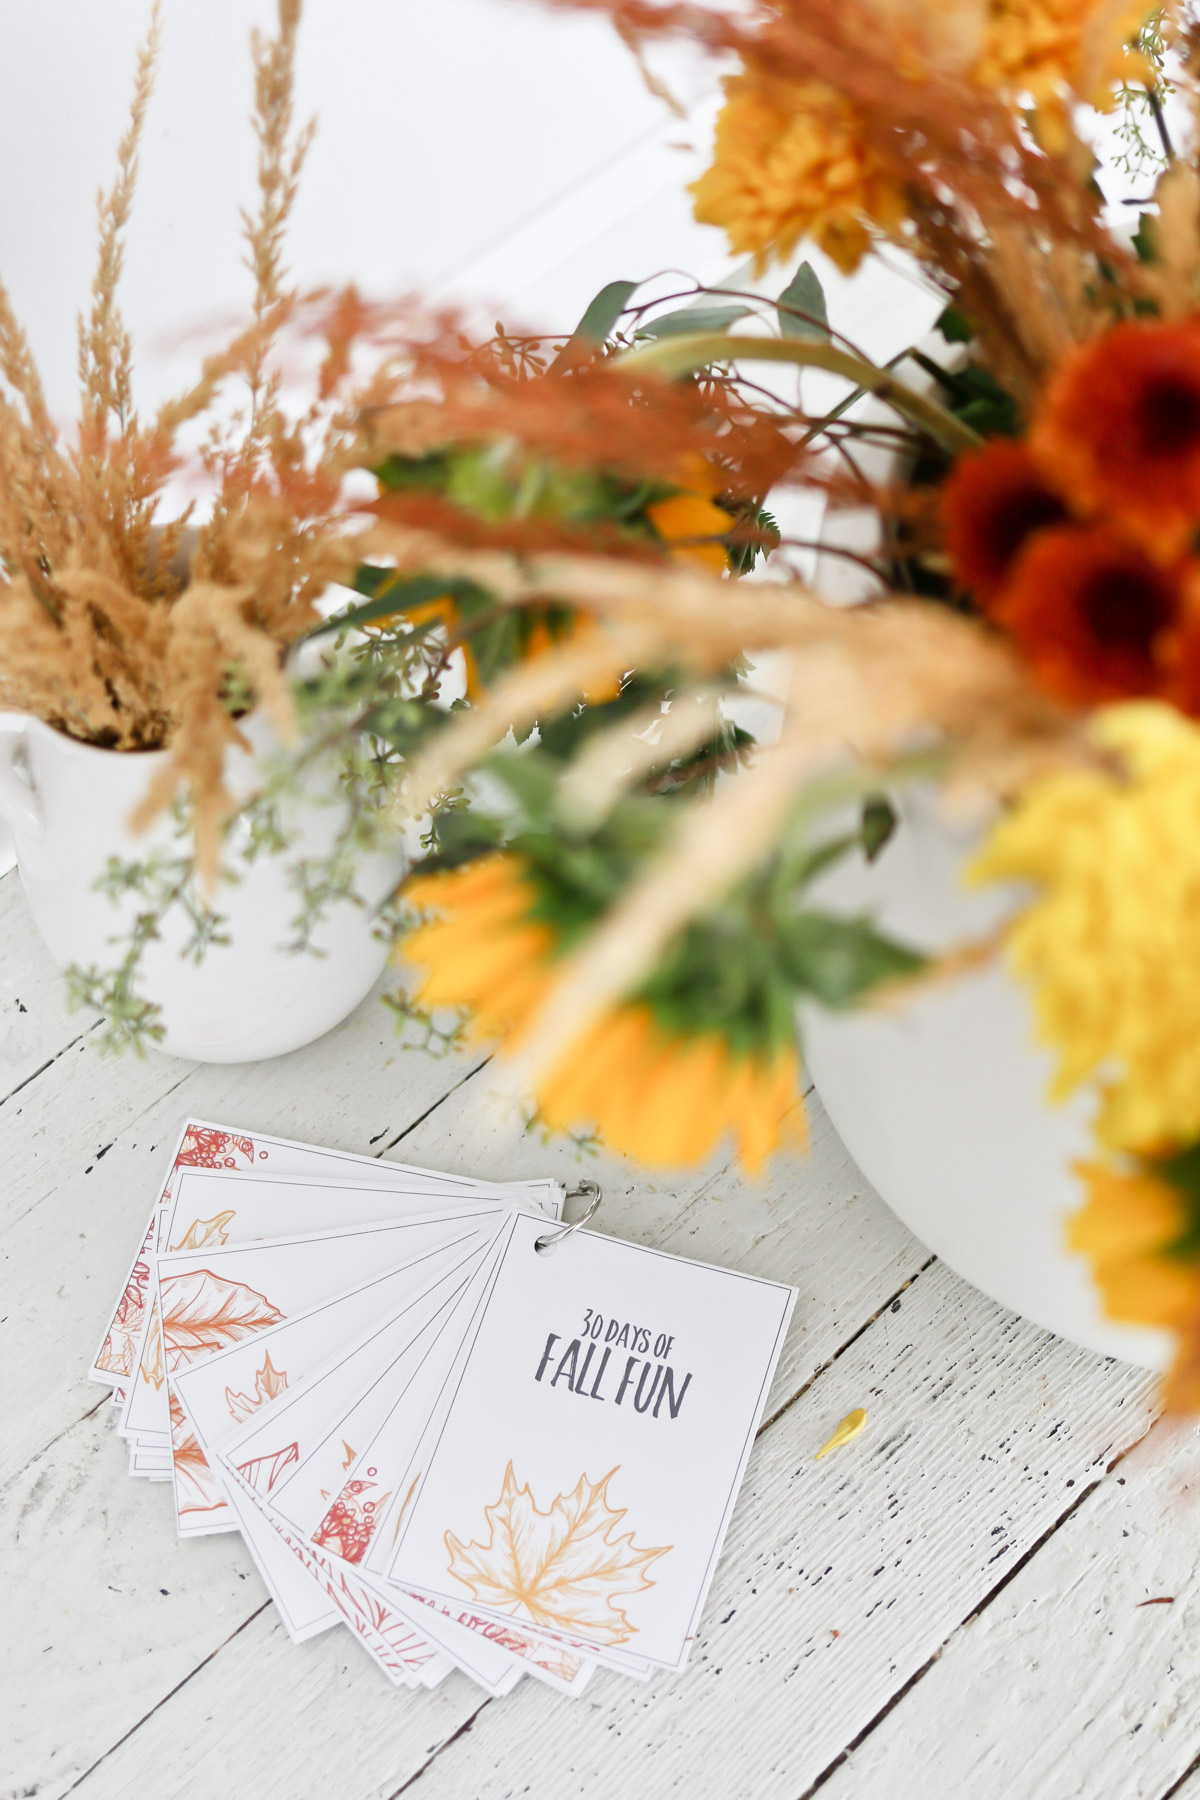 30 Days of fall fun free printables